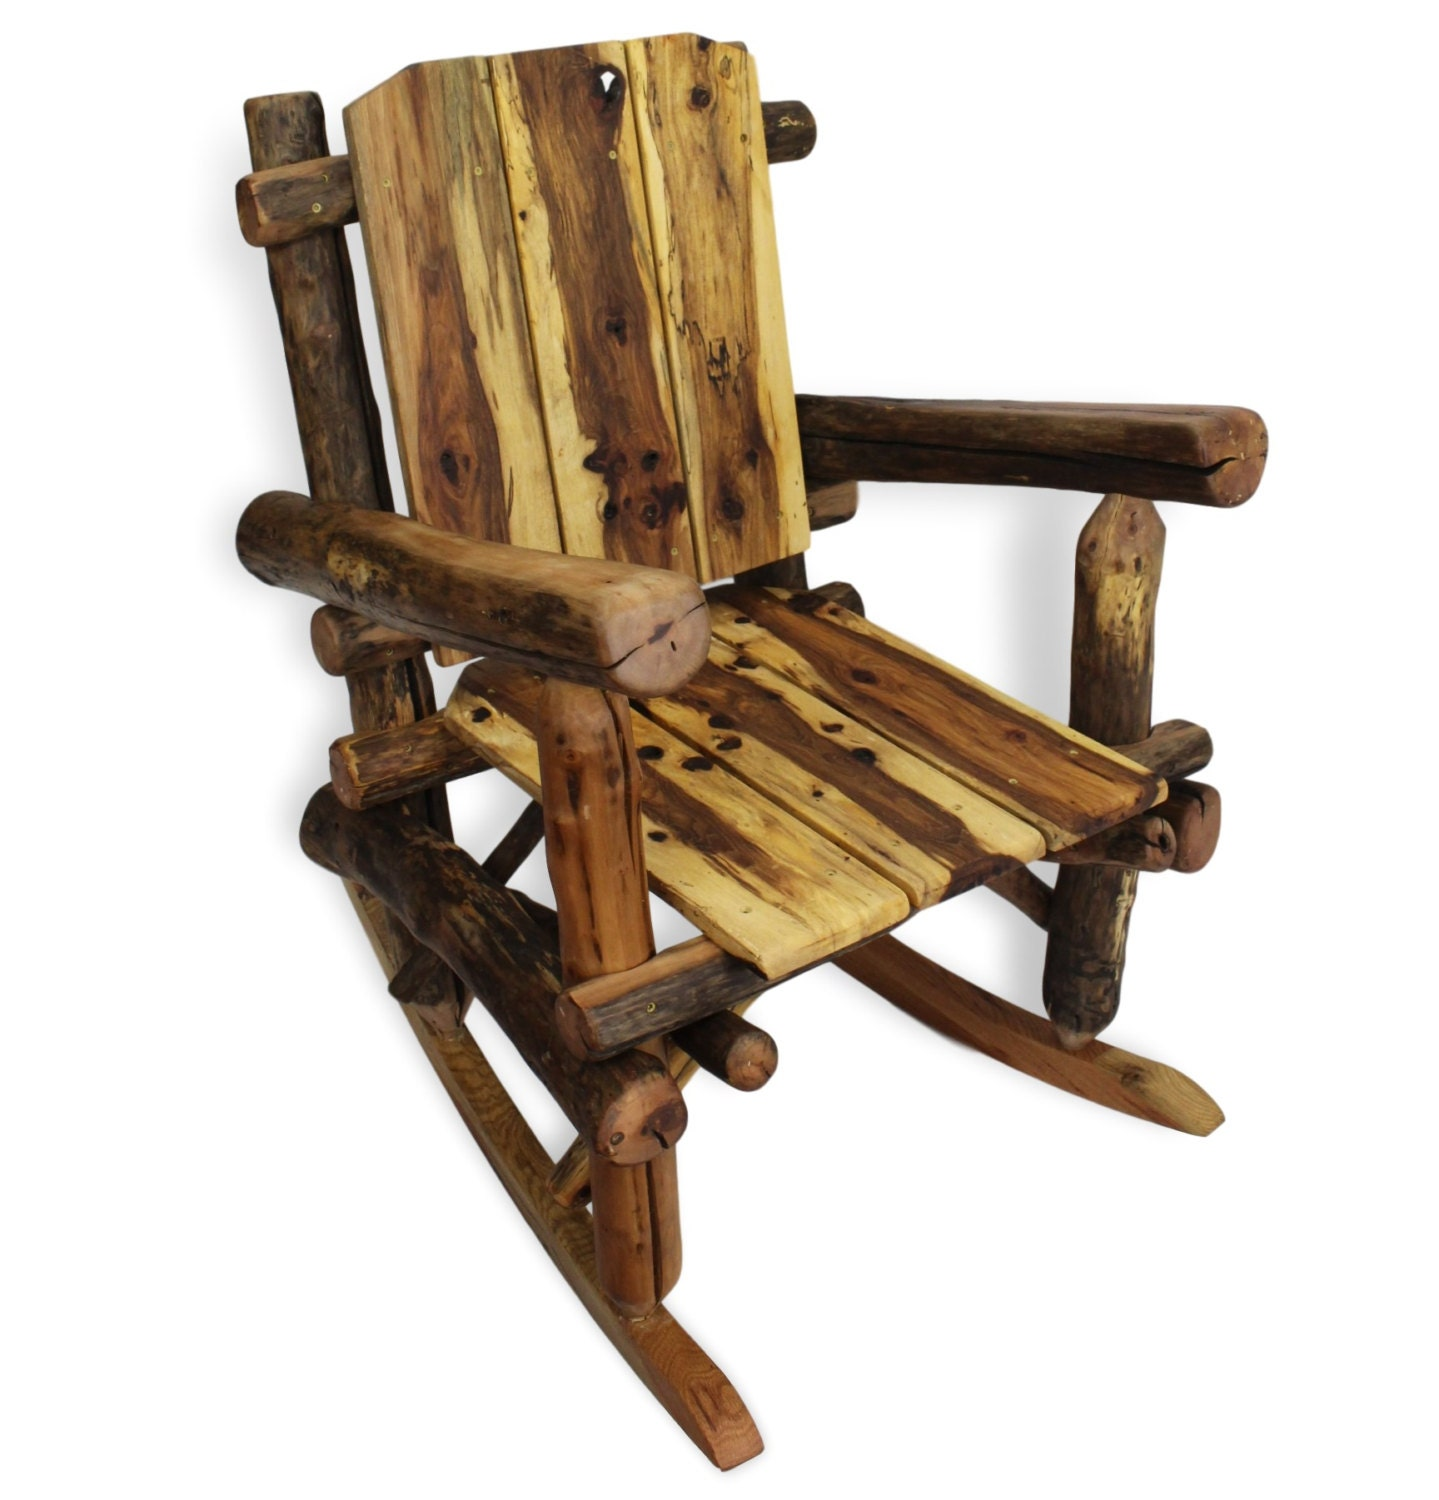 Rustic Rocking Chair Reclaimed Wood Rocking Chair Reclaimed